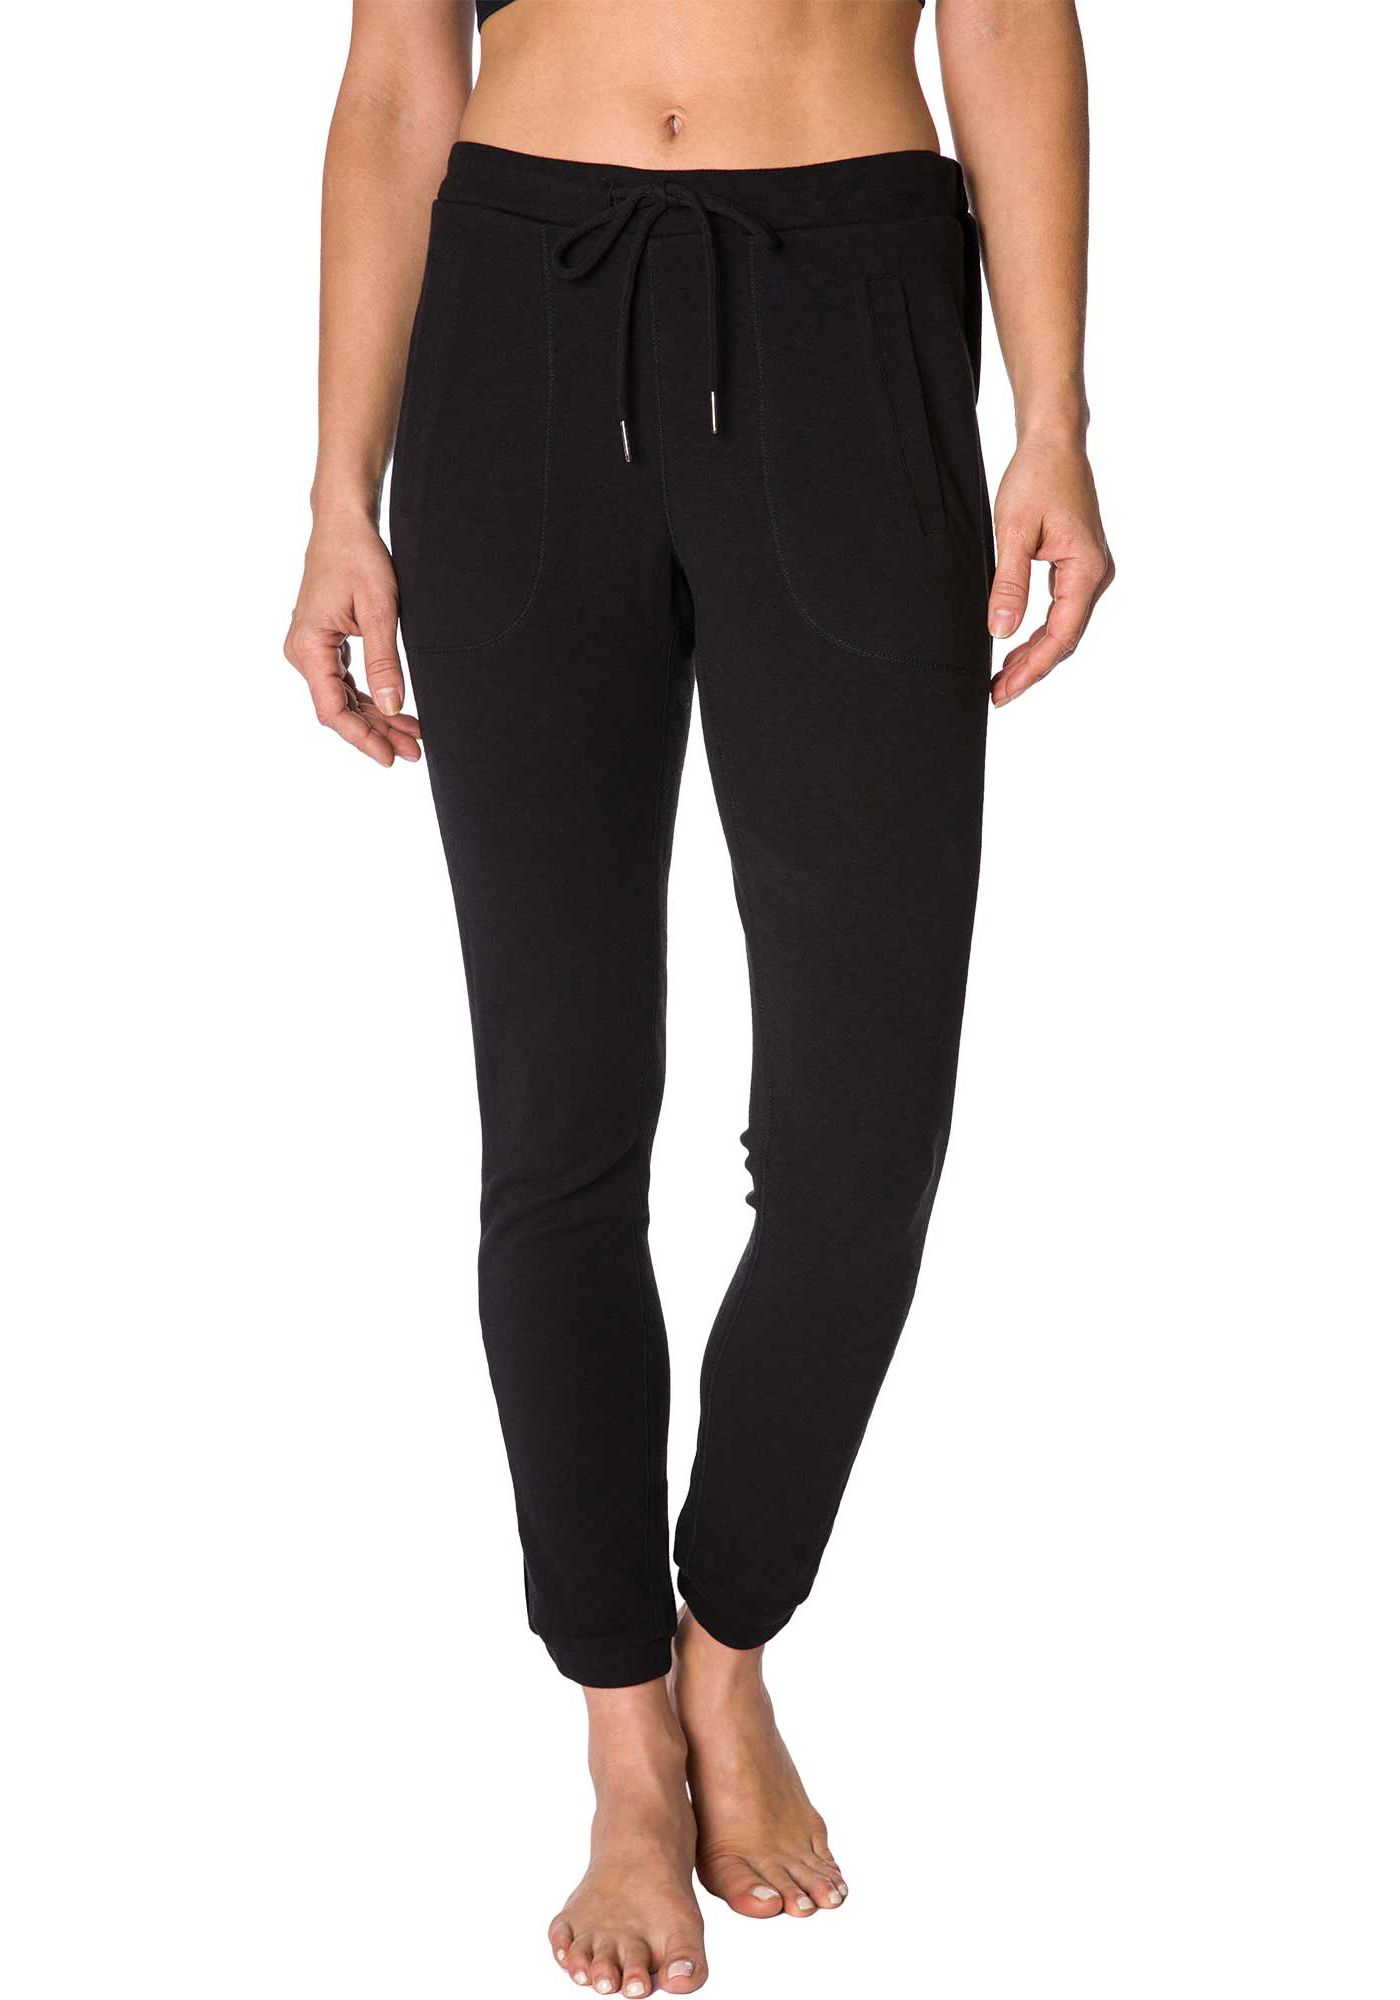 Betsey Johnson Performance Women's Skinny Velvet Trim Pants